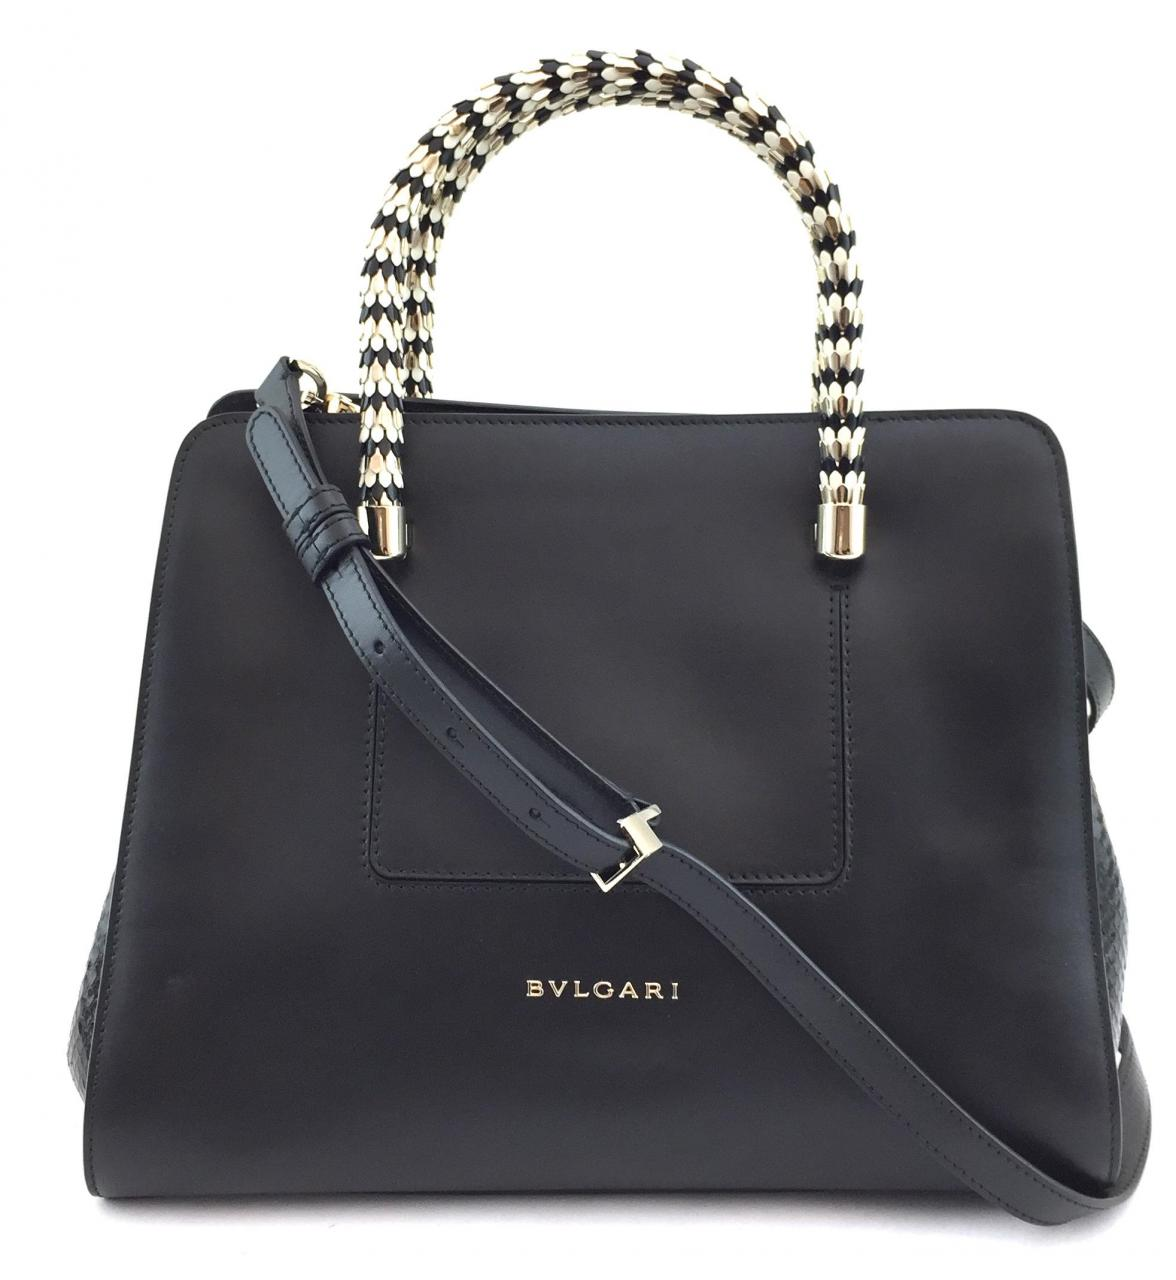 0ad6d504b The Icona Top Handle bag is another cult classic from Bvlgari obtainable in  calf-skin exotic or leather alligator skin in a range of colours.